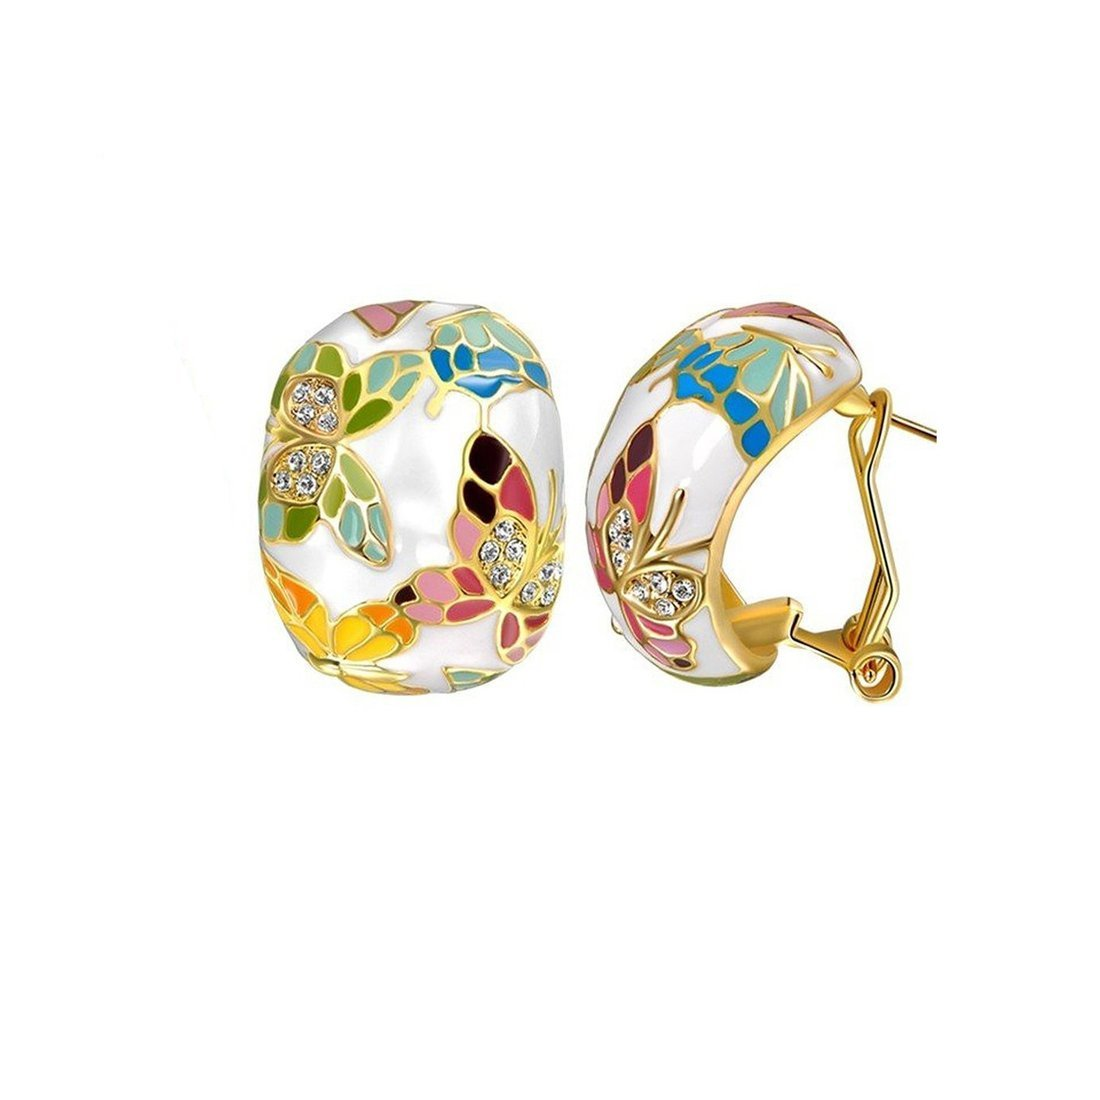 Yellow Chimes Crystals from Swarovski Queen of Versailles Enamel Crystal Earrings for Women and Girls